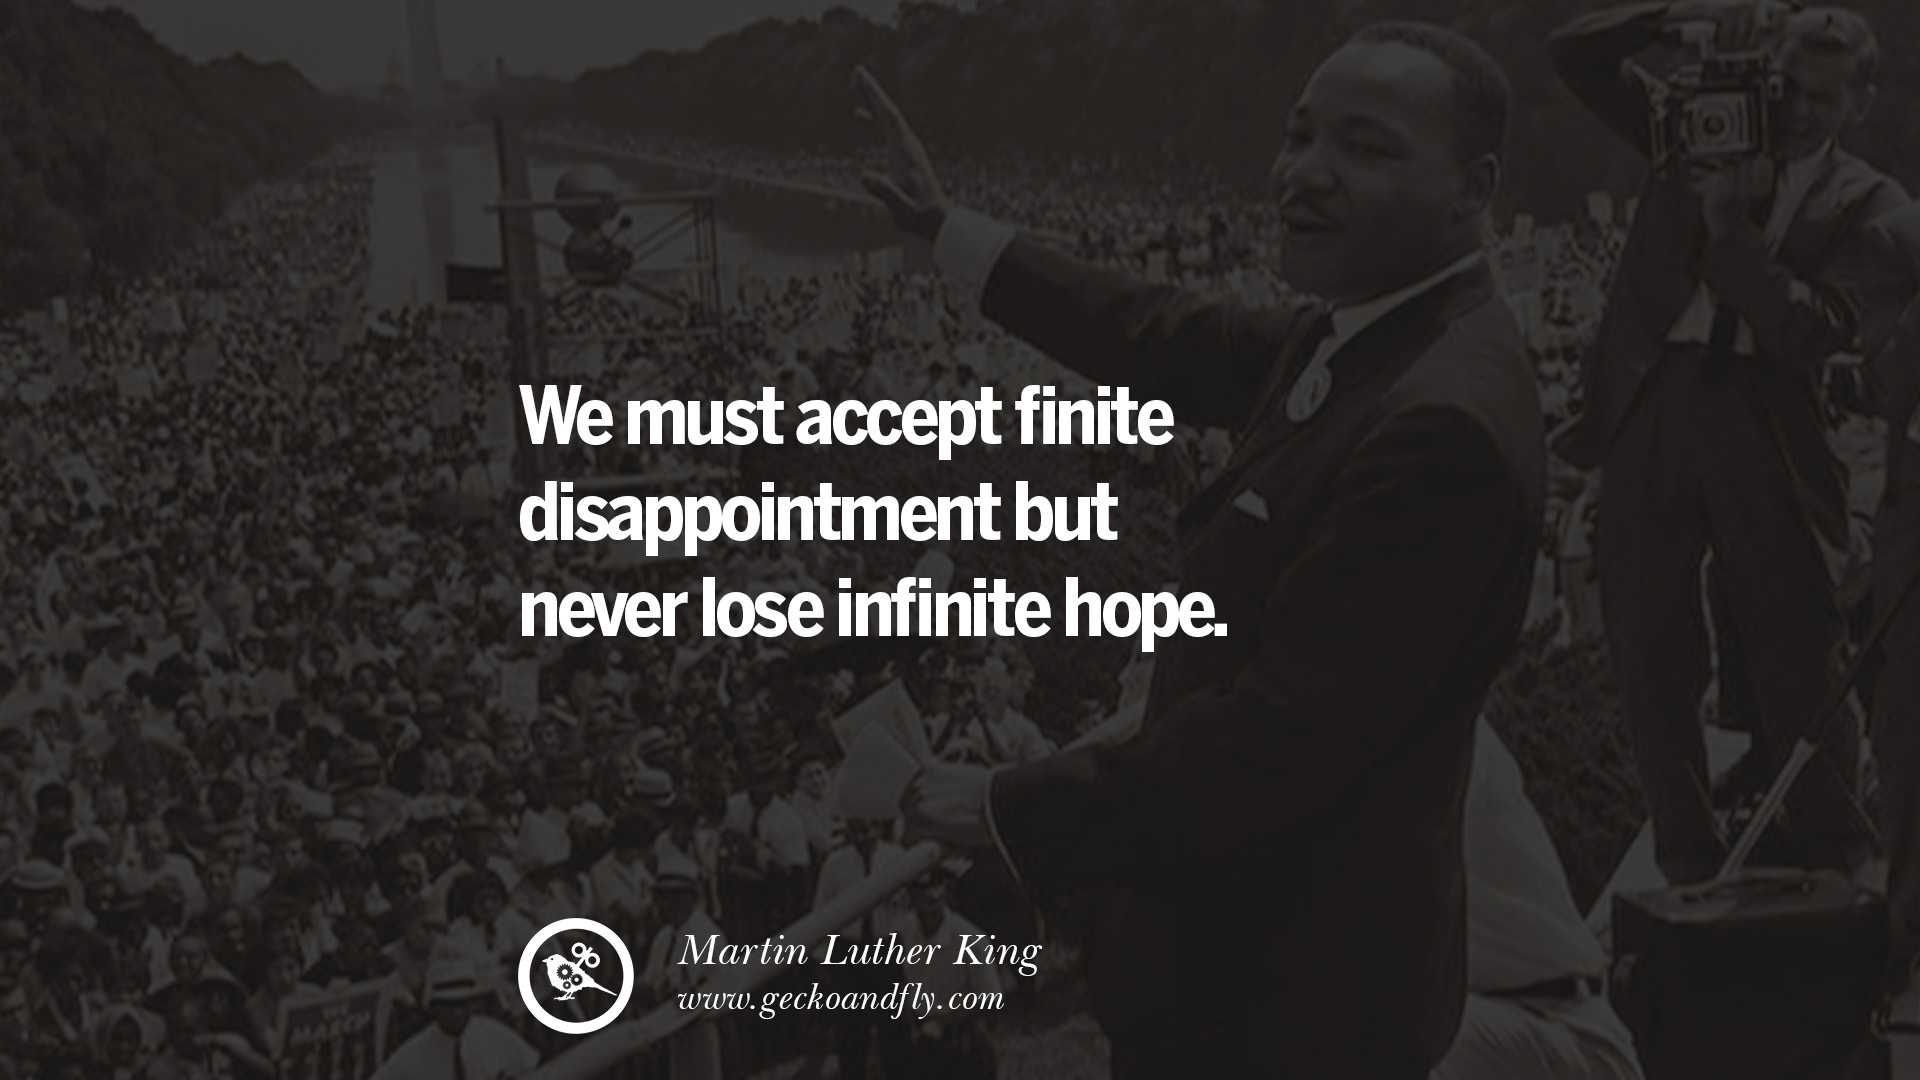 Images Of Martin Luther King Quotes 30 Powerful Martin Luther King Jr Quotes On Equality Rights Black